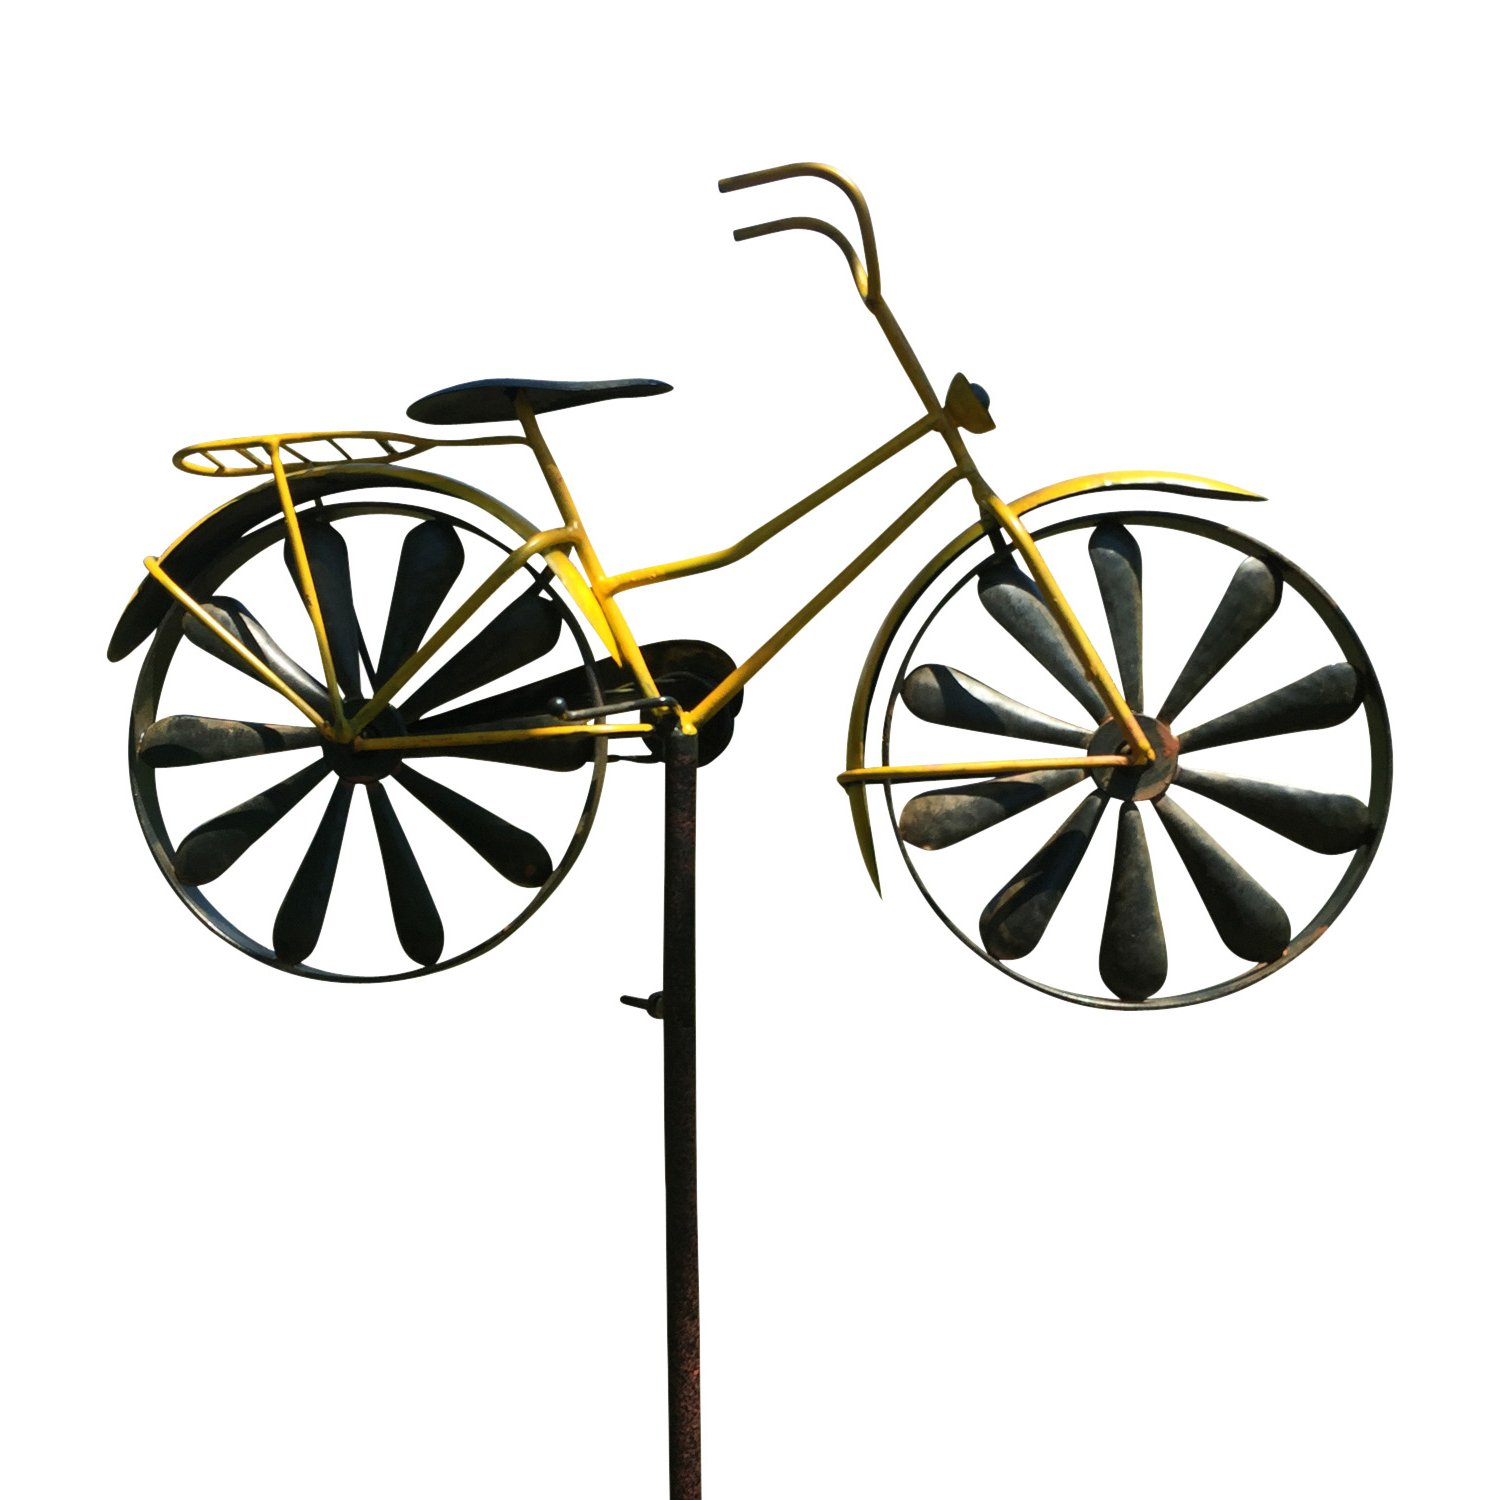 Whole House Worlds The Americana Yellow Bike Garden Spinner, Vintage Style Stake Decoration, Rustic Yellow With Antiqued Finish, 4 Feet 3 Inches Tall (130cm) By